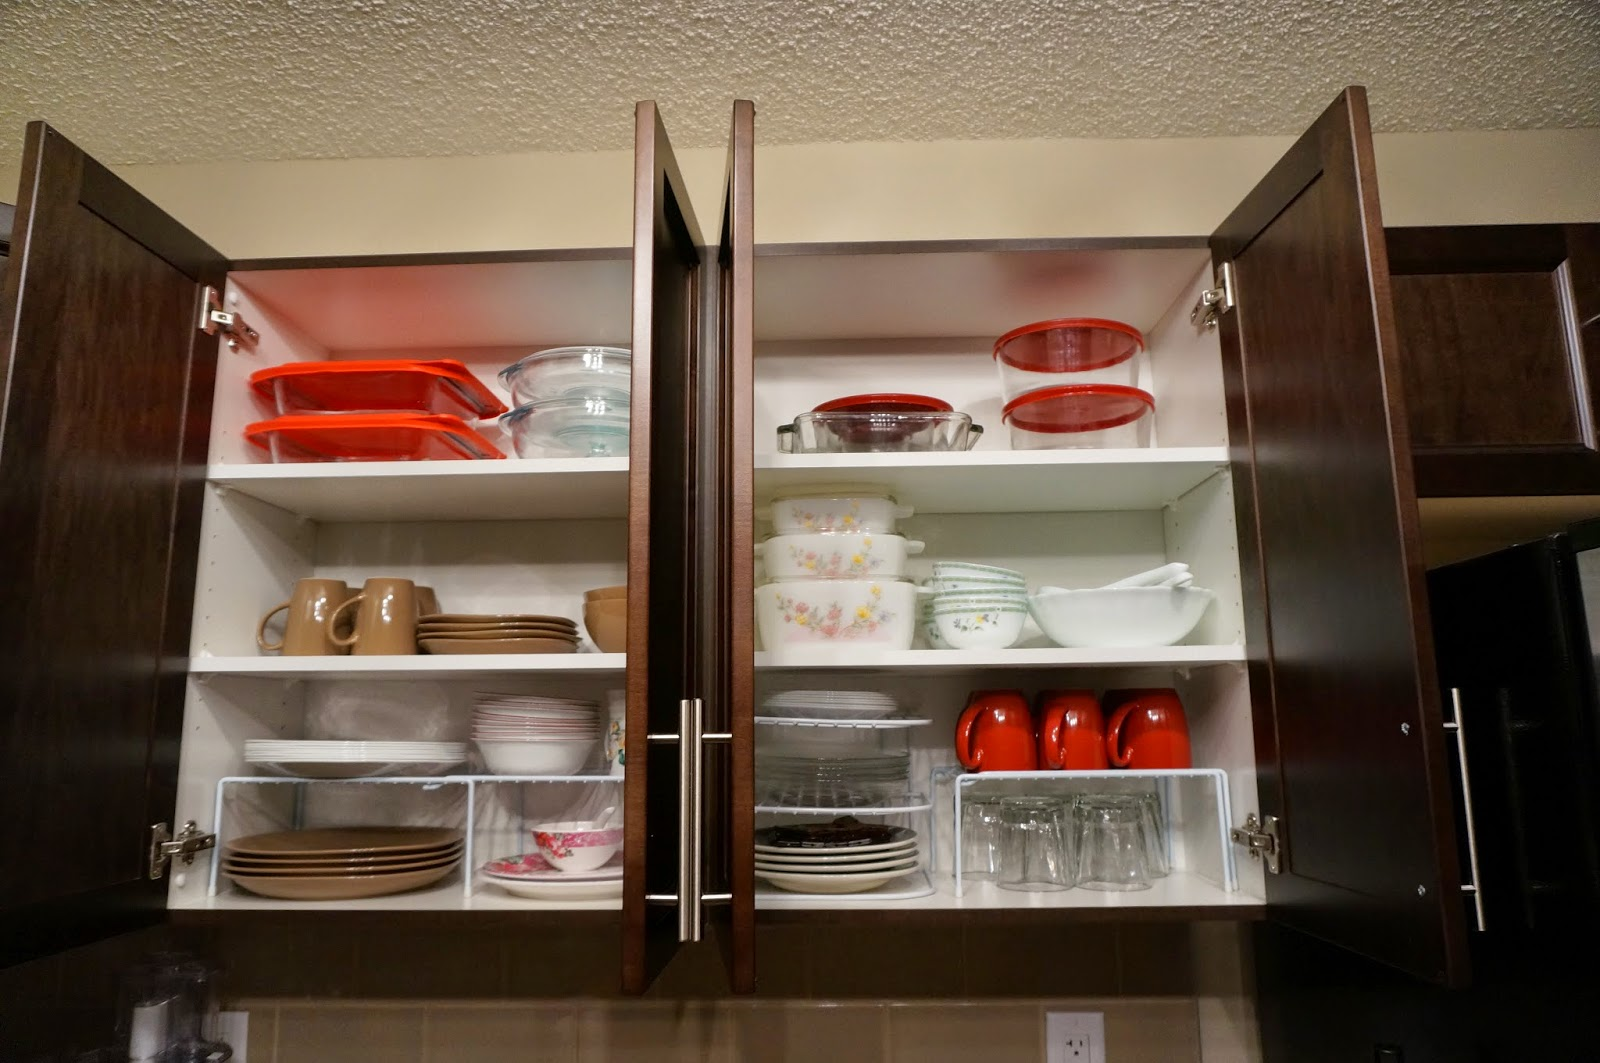 tips for organizing kitchen cabinets كيف ارتب مطبخى بالصور 8536